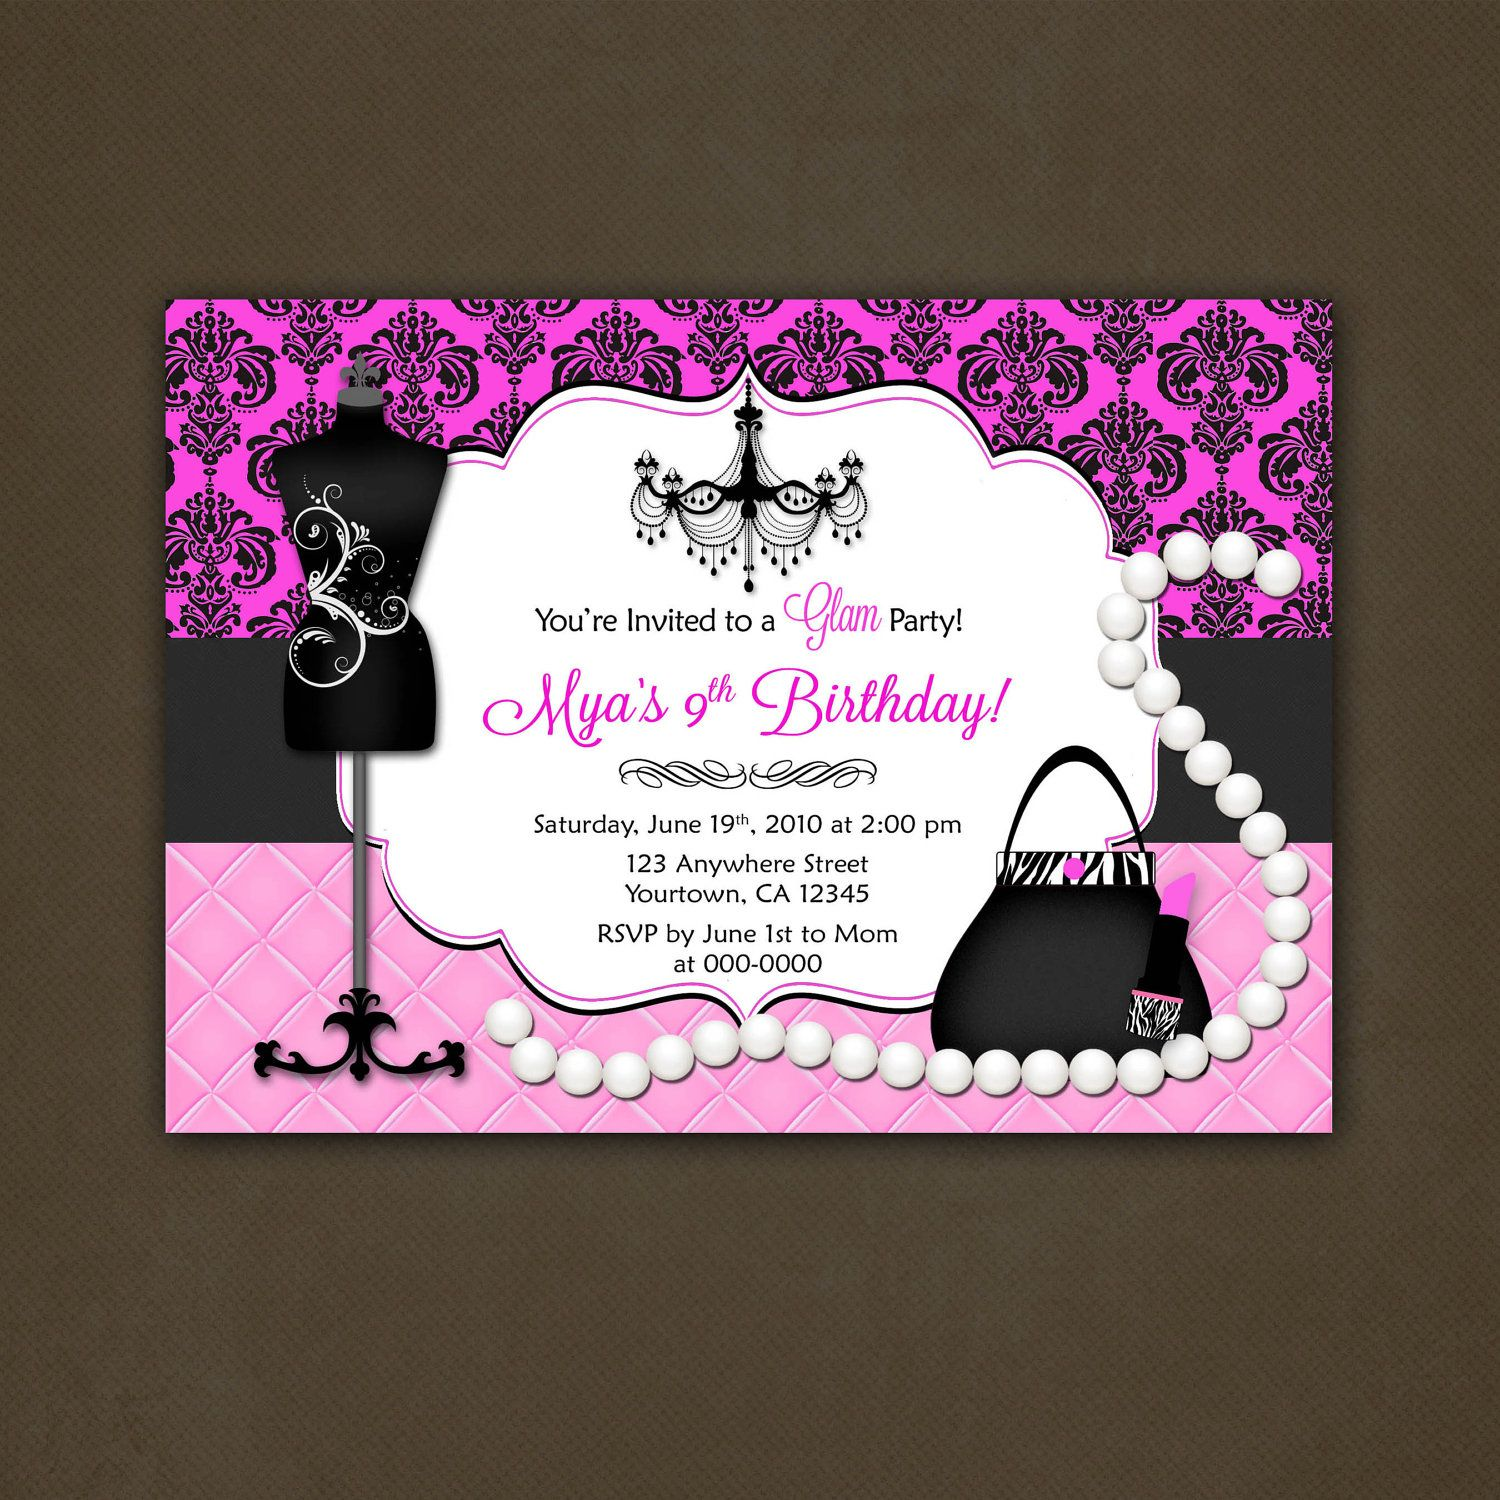 Fashionista invites | Glamour Fashionista Birthday Party Invitation ...